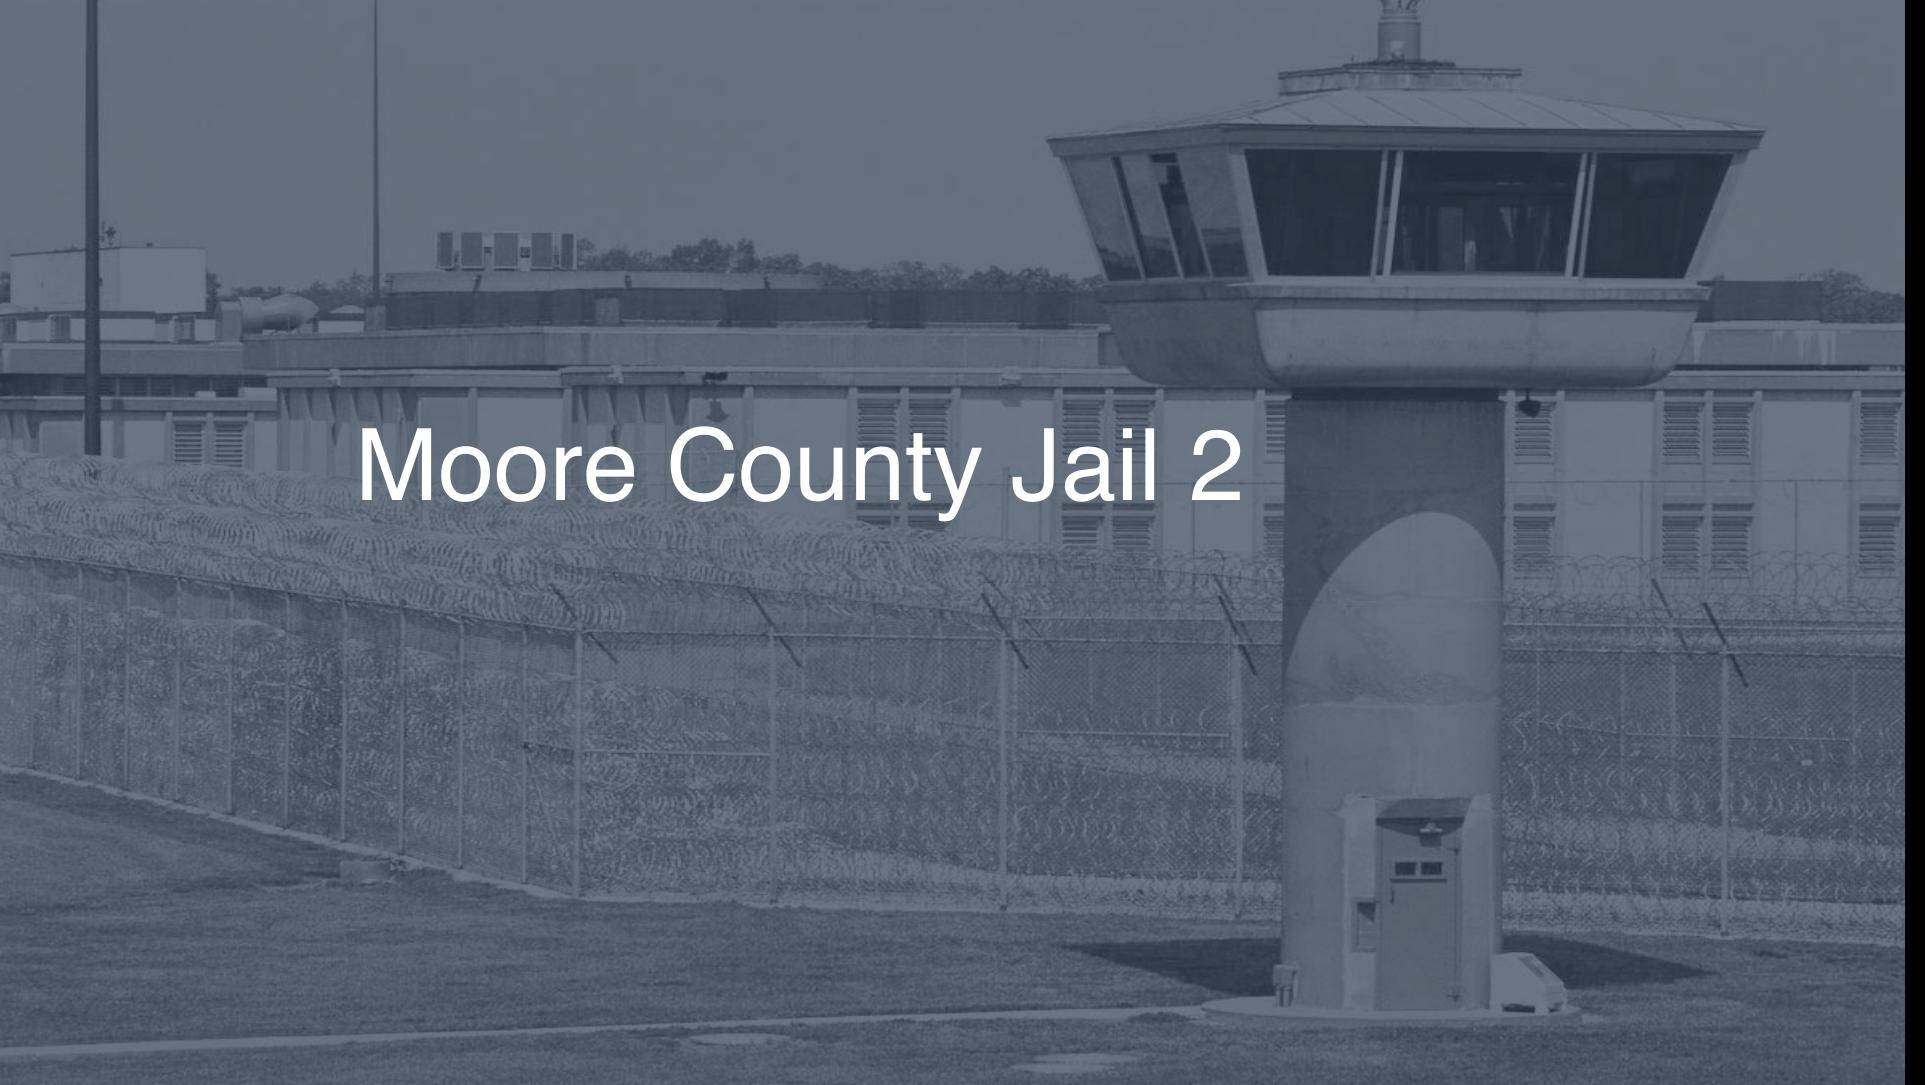 Moore County Jail Inmate Search, Lookup & Services - Pigeonly